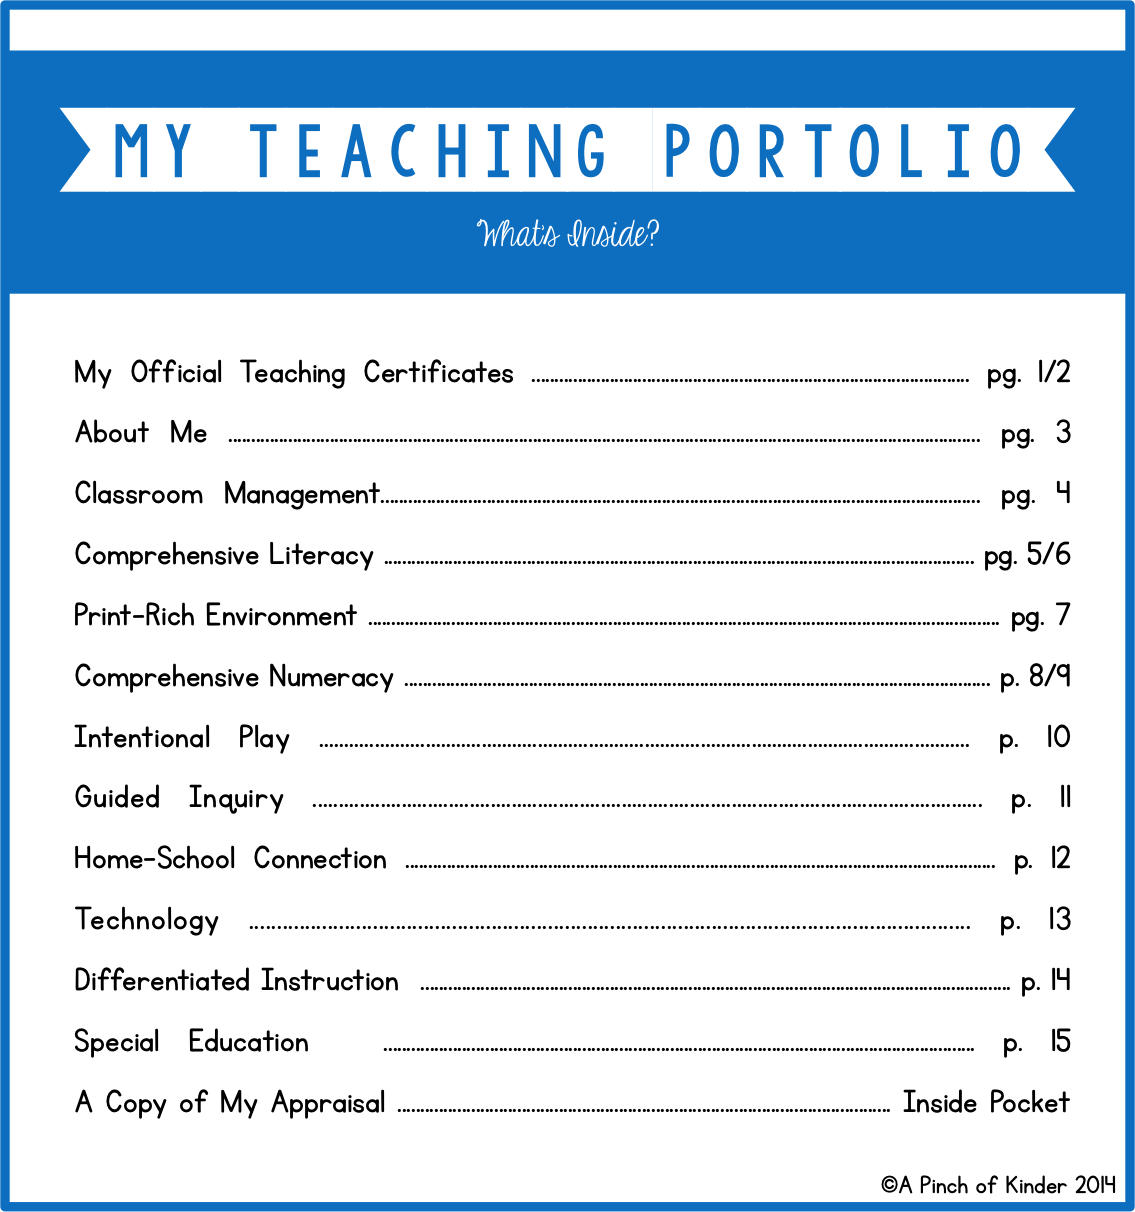 teaching portfolio template free - august 2014 a pinch of kinder